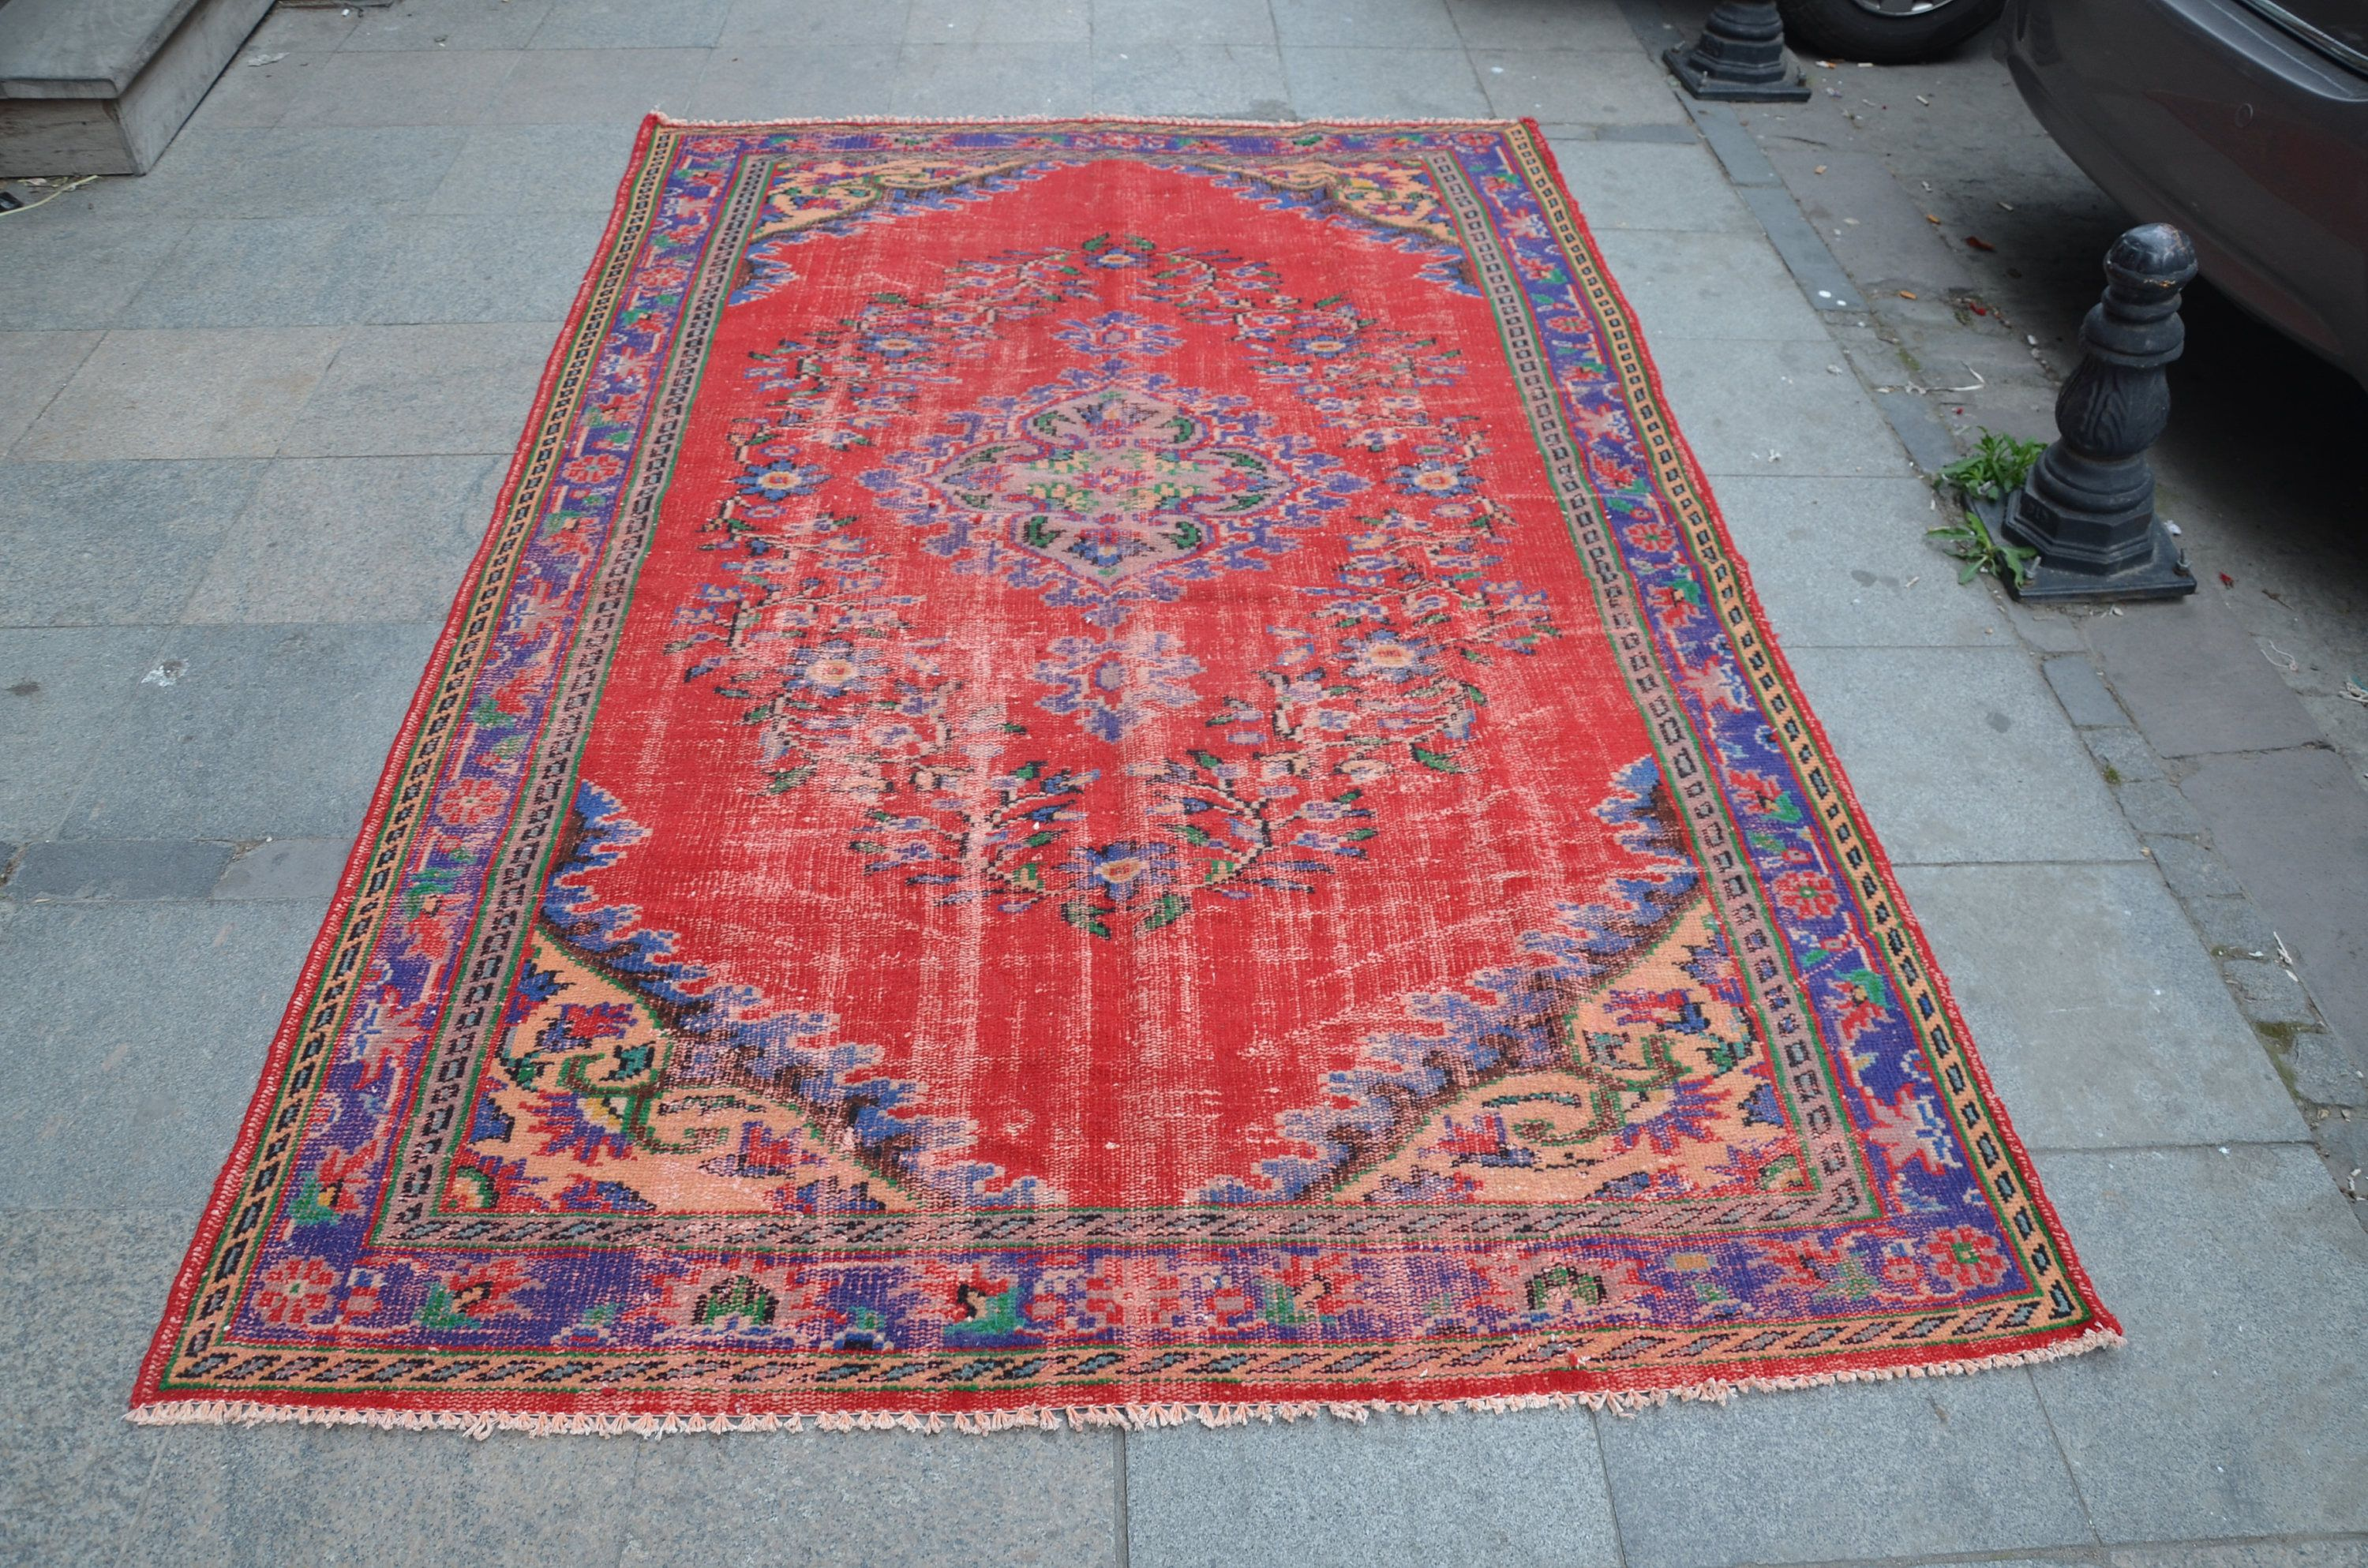 Vintage Non Overdyed Rug Blue And Red Original Turkish Size 270 Cm X 174 Ft Material Is Wool Cotton Fast Shipping To All Over The World